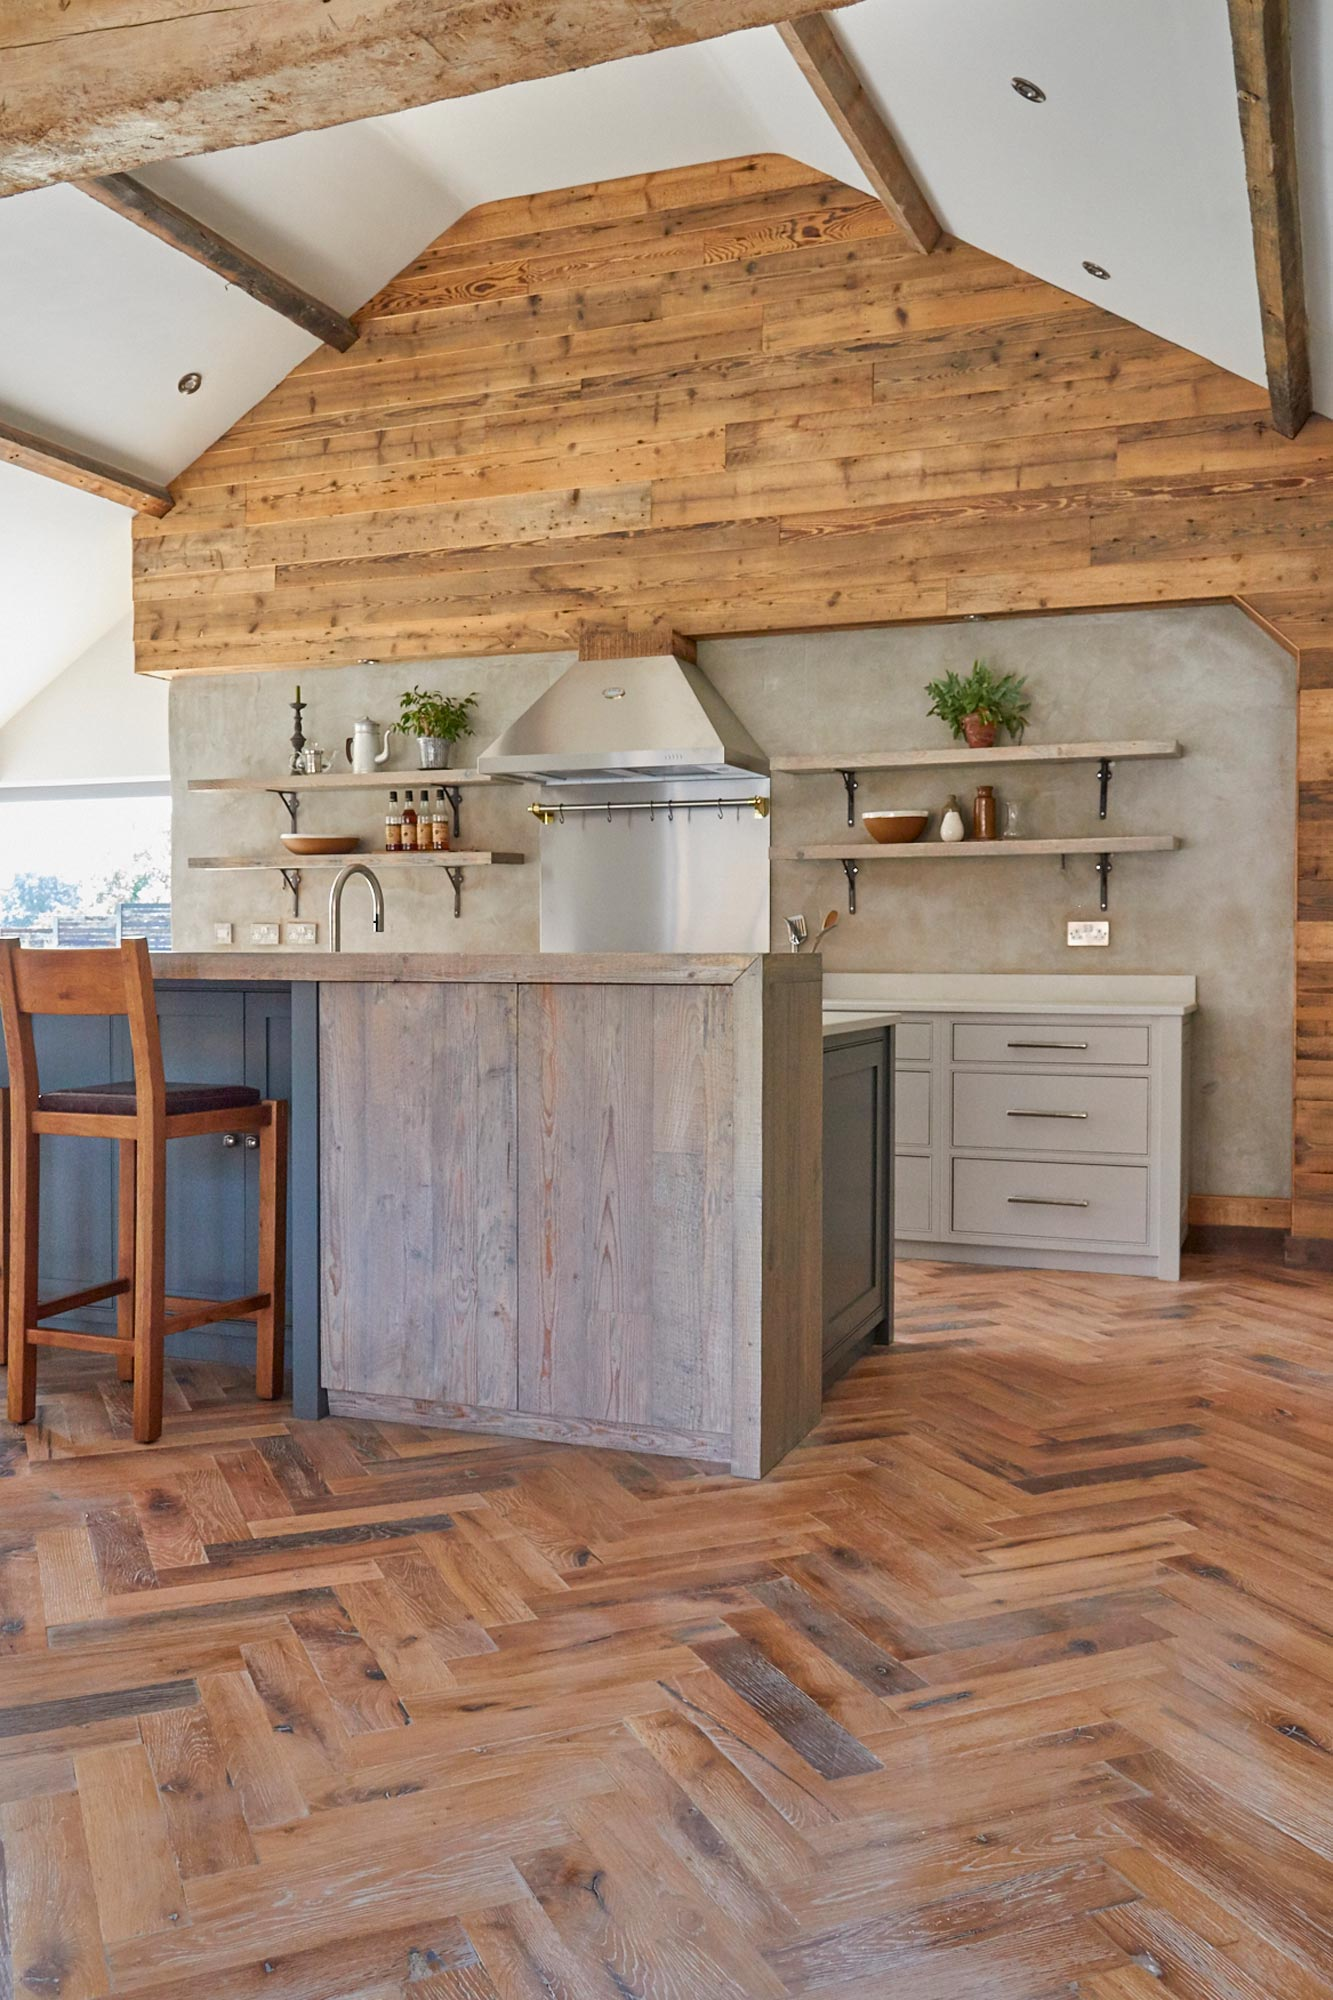 Bespoke island with reclaimed slab cabinet doors sits on herringbone wood floor